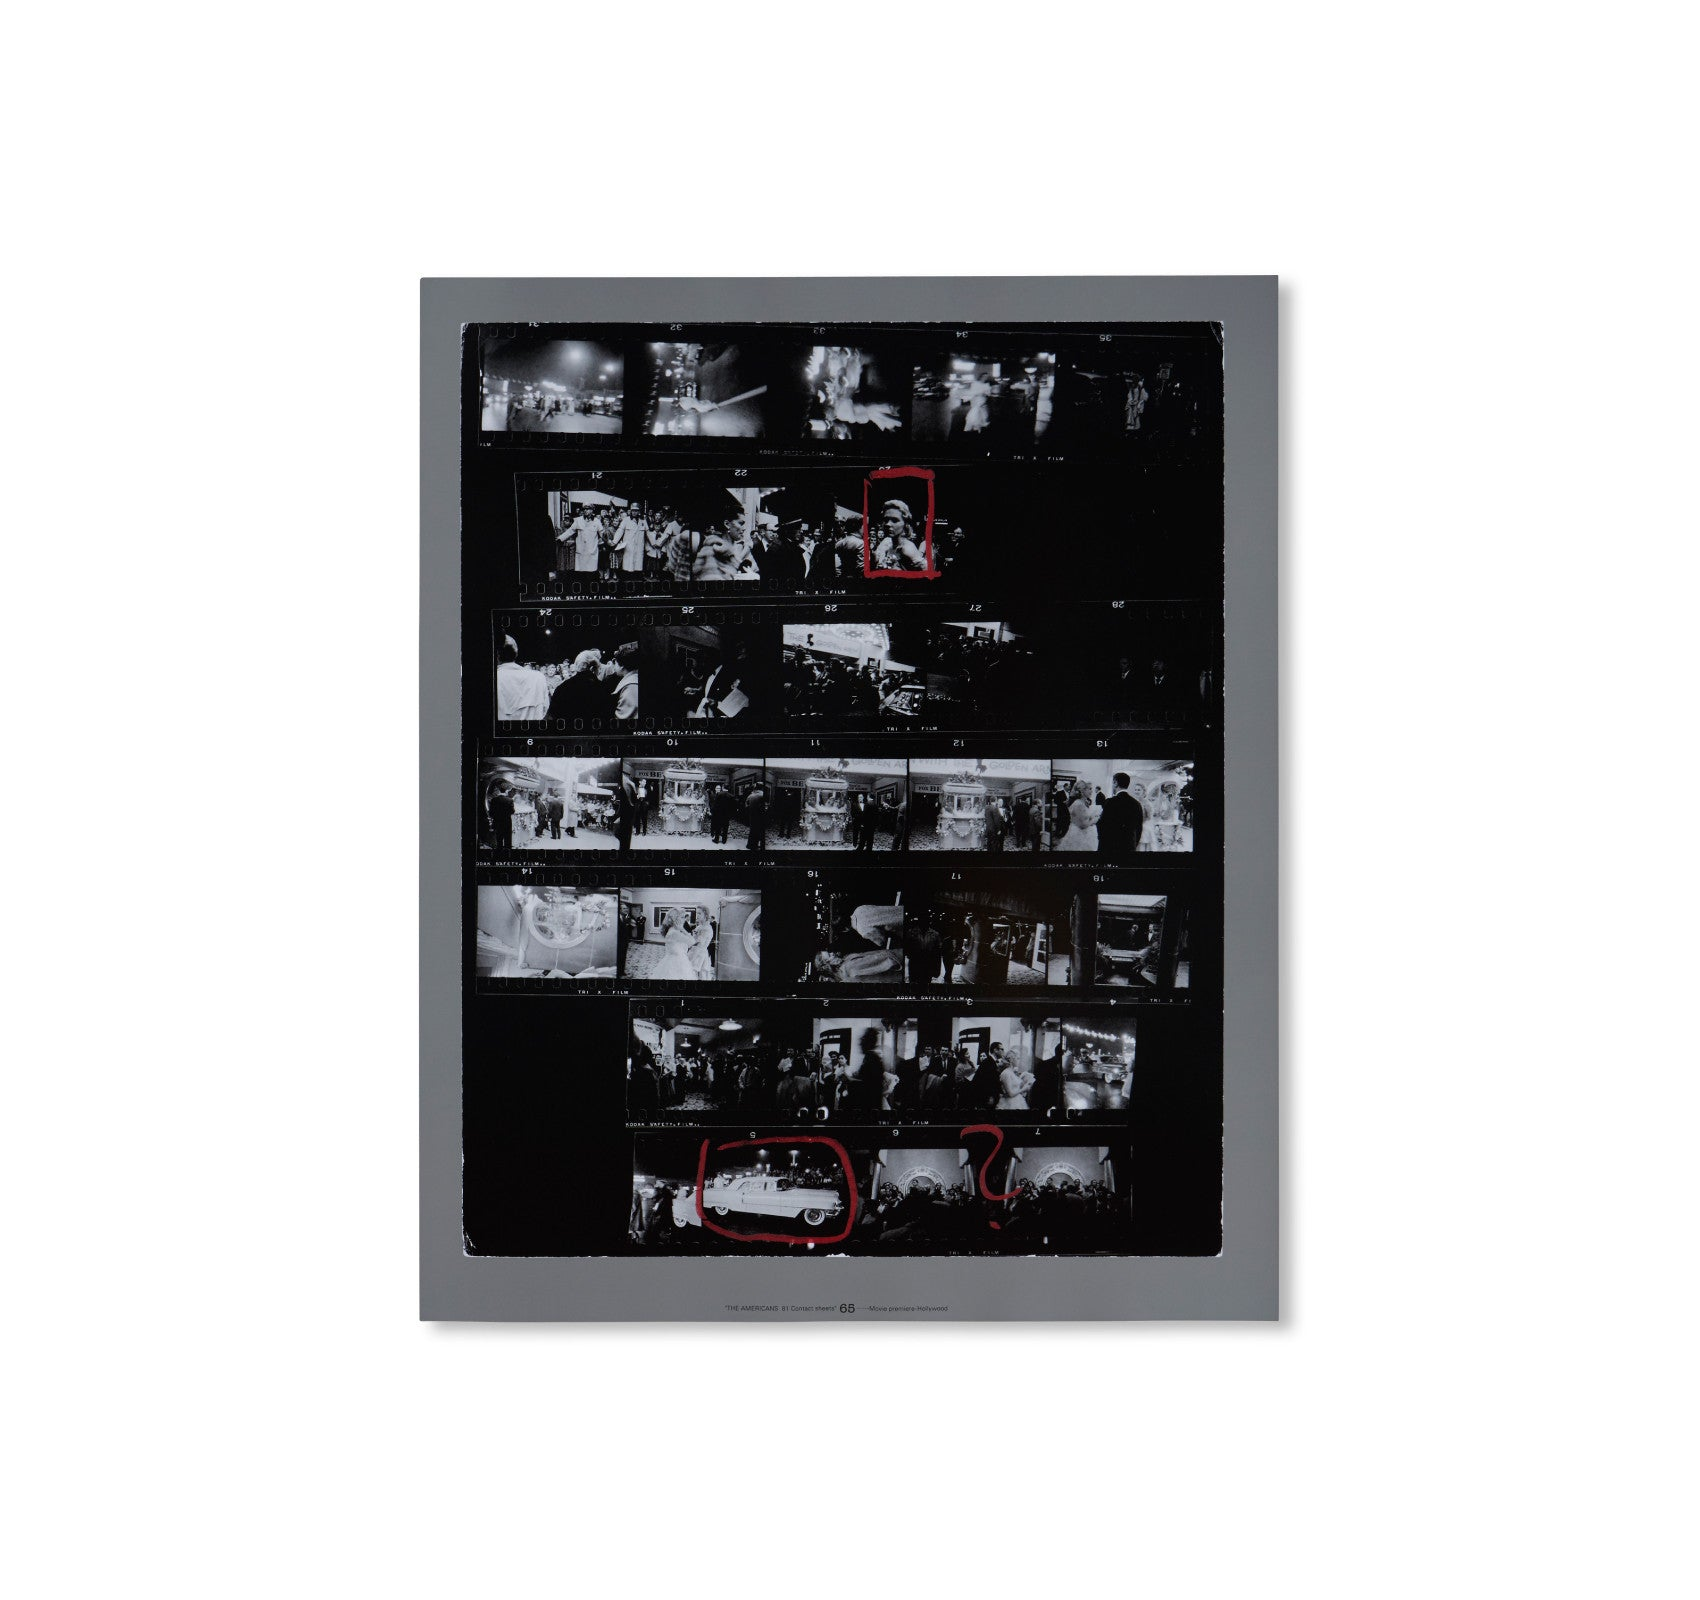 THE AMERICANS, 81 CONTACT SHEETS (FOLDING BOARD BOX) by Robert Frank [RARE]